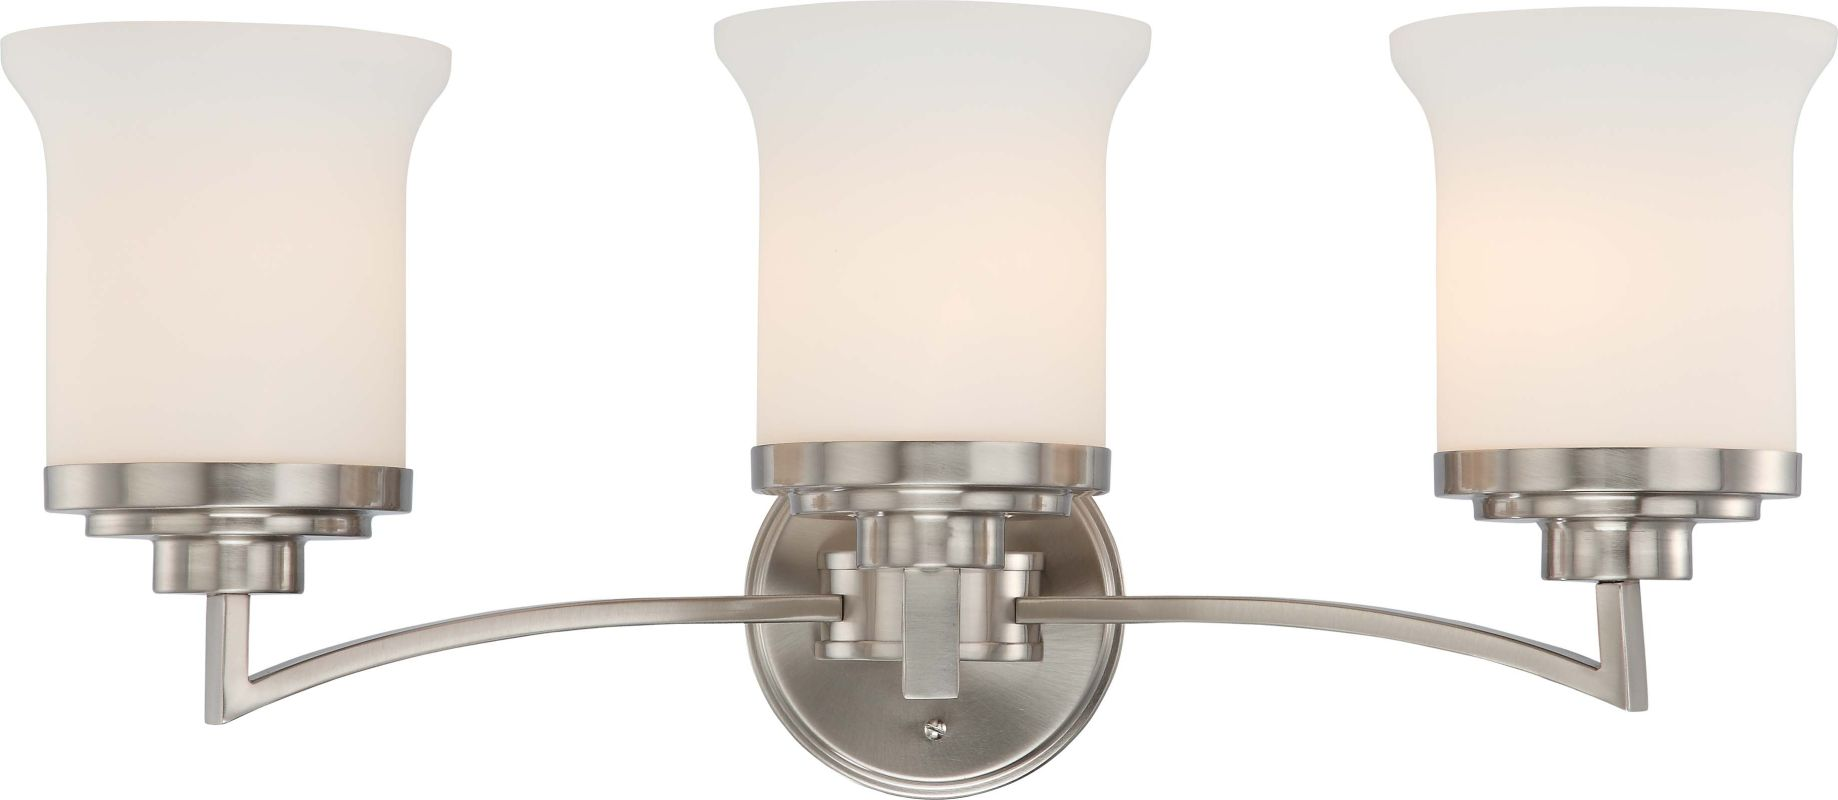 Nuvo Lighting 60/4103 Brushed Nickel Harmony Three Light Bathroom Fixture with Satin White Glass ...